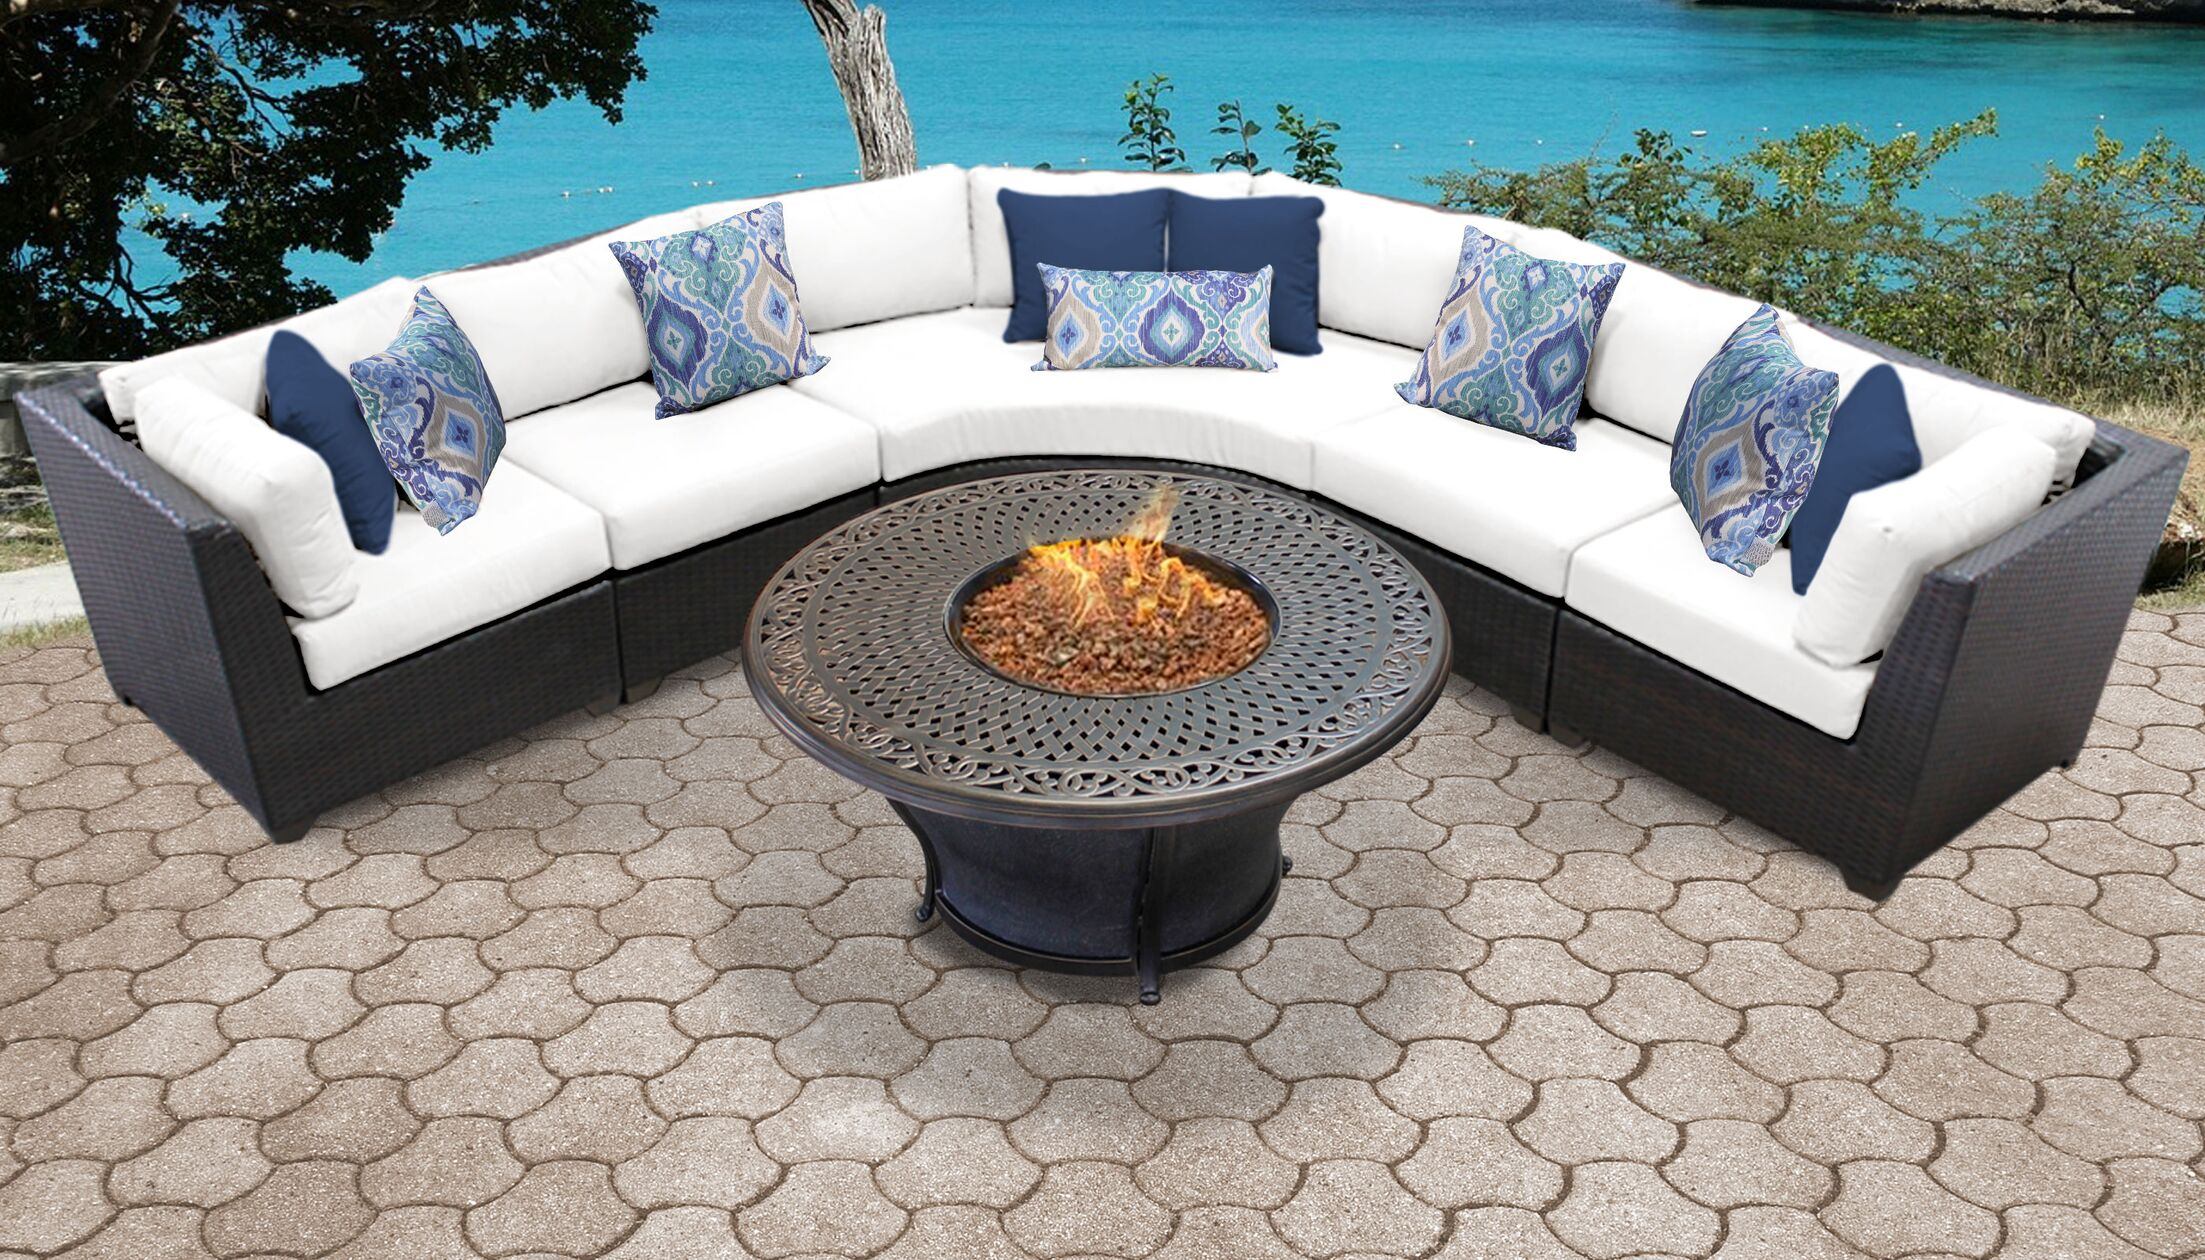 Barbados 6 Piece Sectional Set with Cushions Color: White